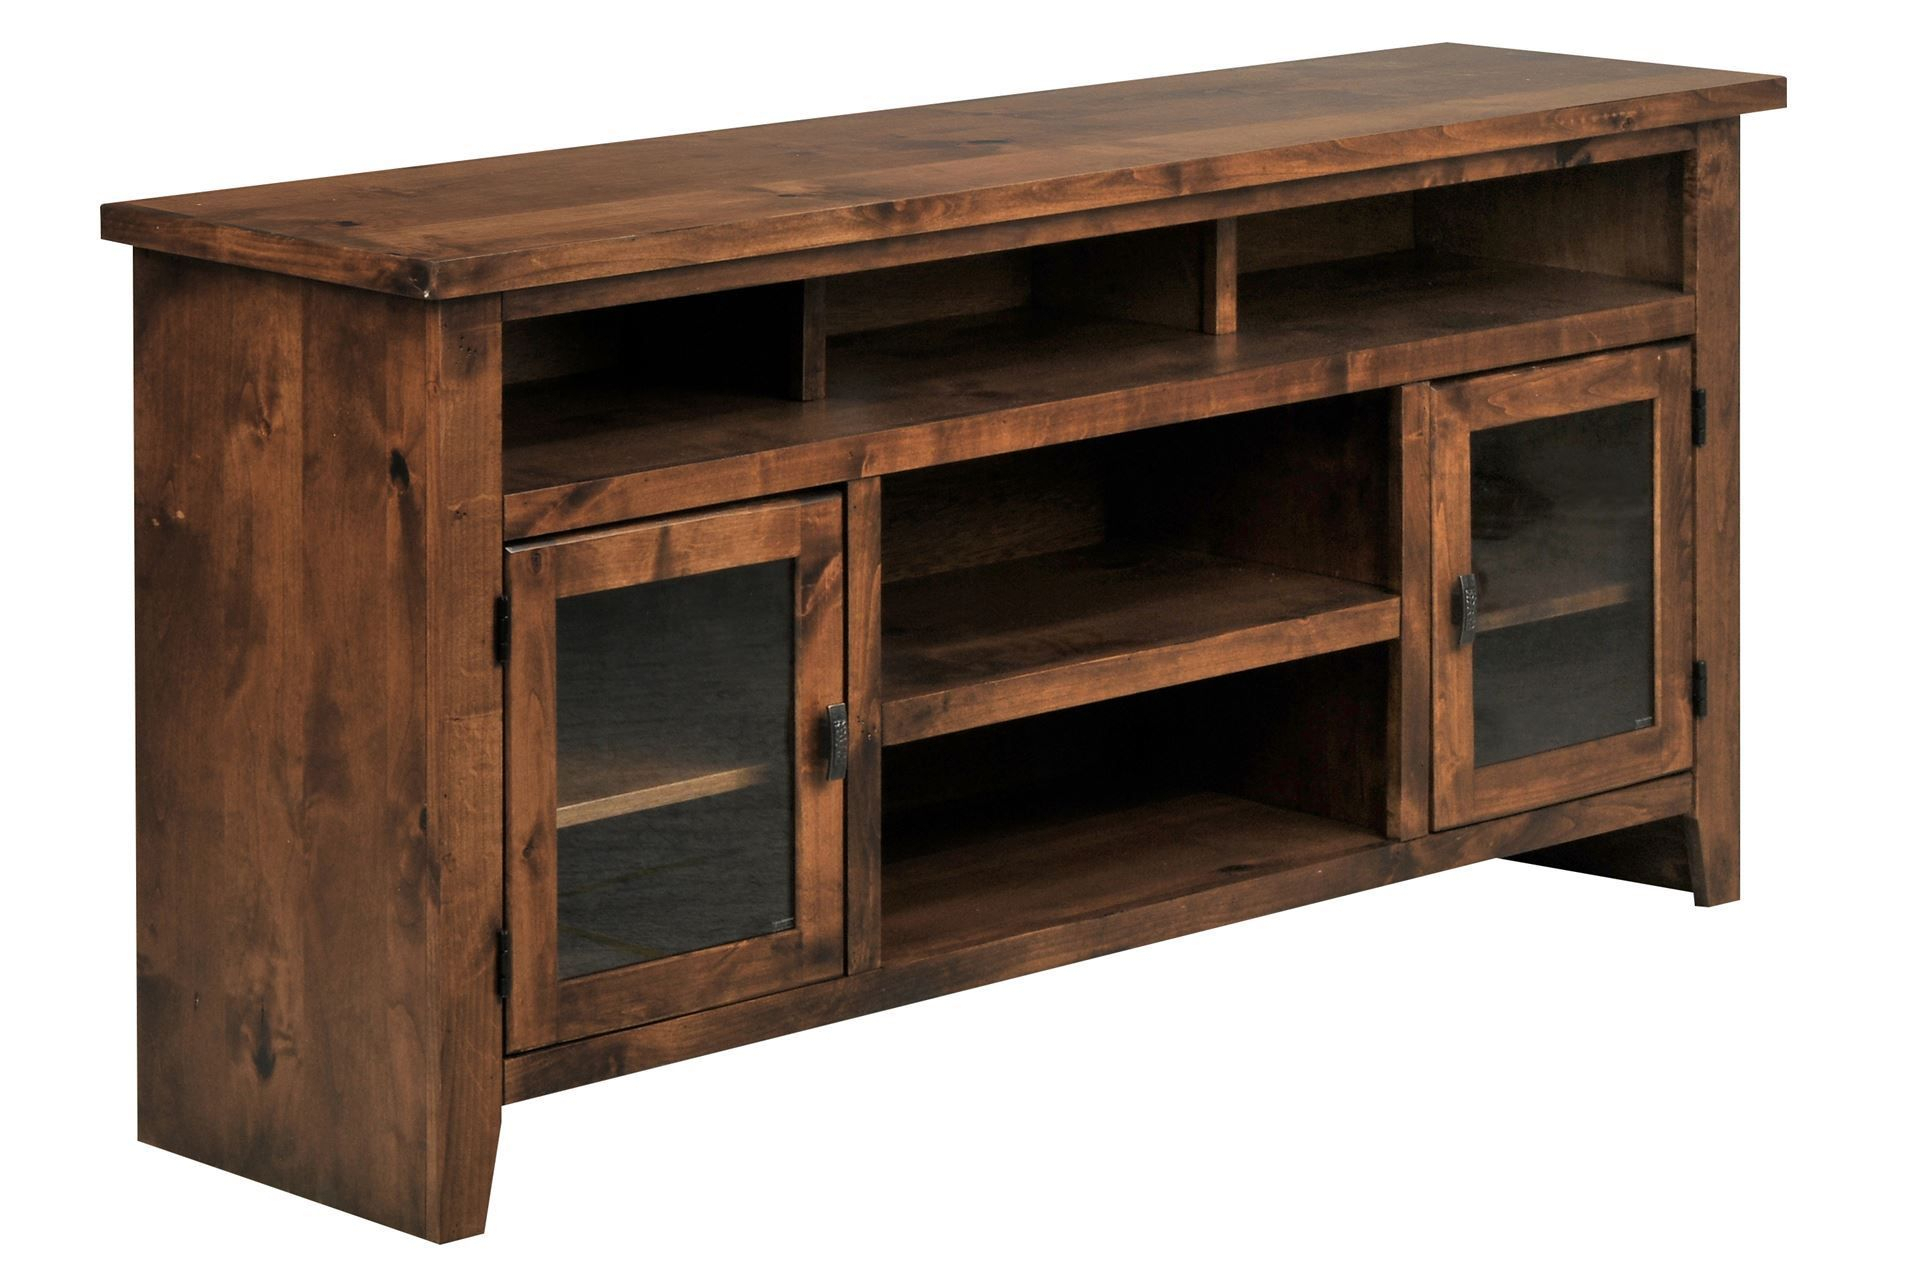 65 Inch Tv Stand, Trent, Fruitwood | 65 Inch Tv Stand, Tv Stands And Tvs For Sinclair White 64 Inch Tv Stands (Gallery 6 of 30)